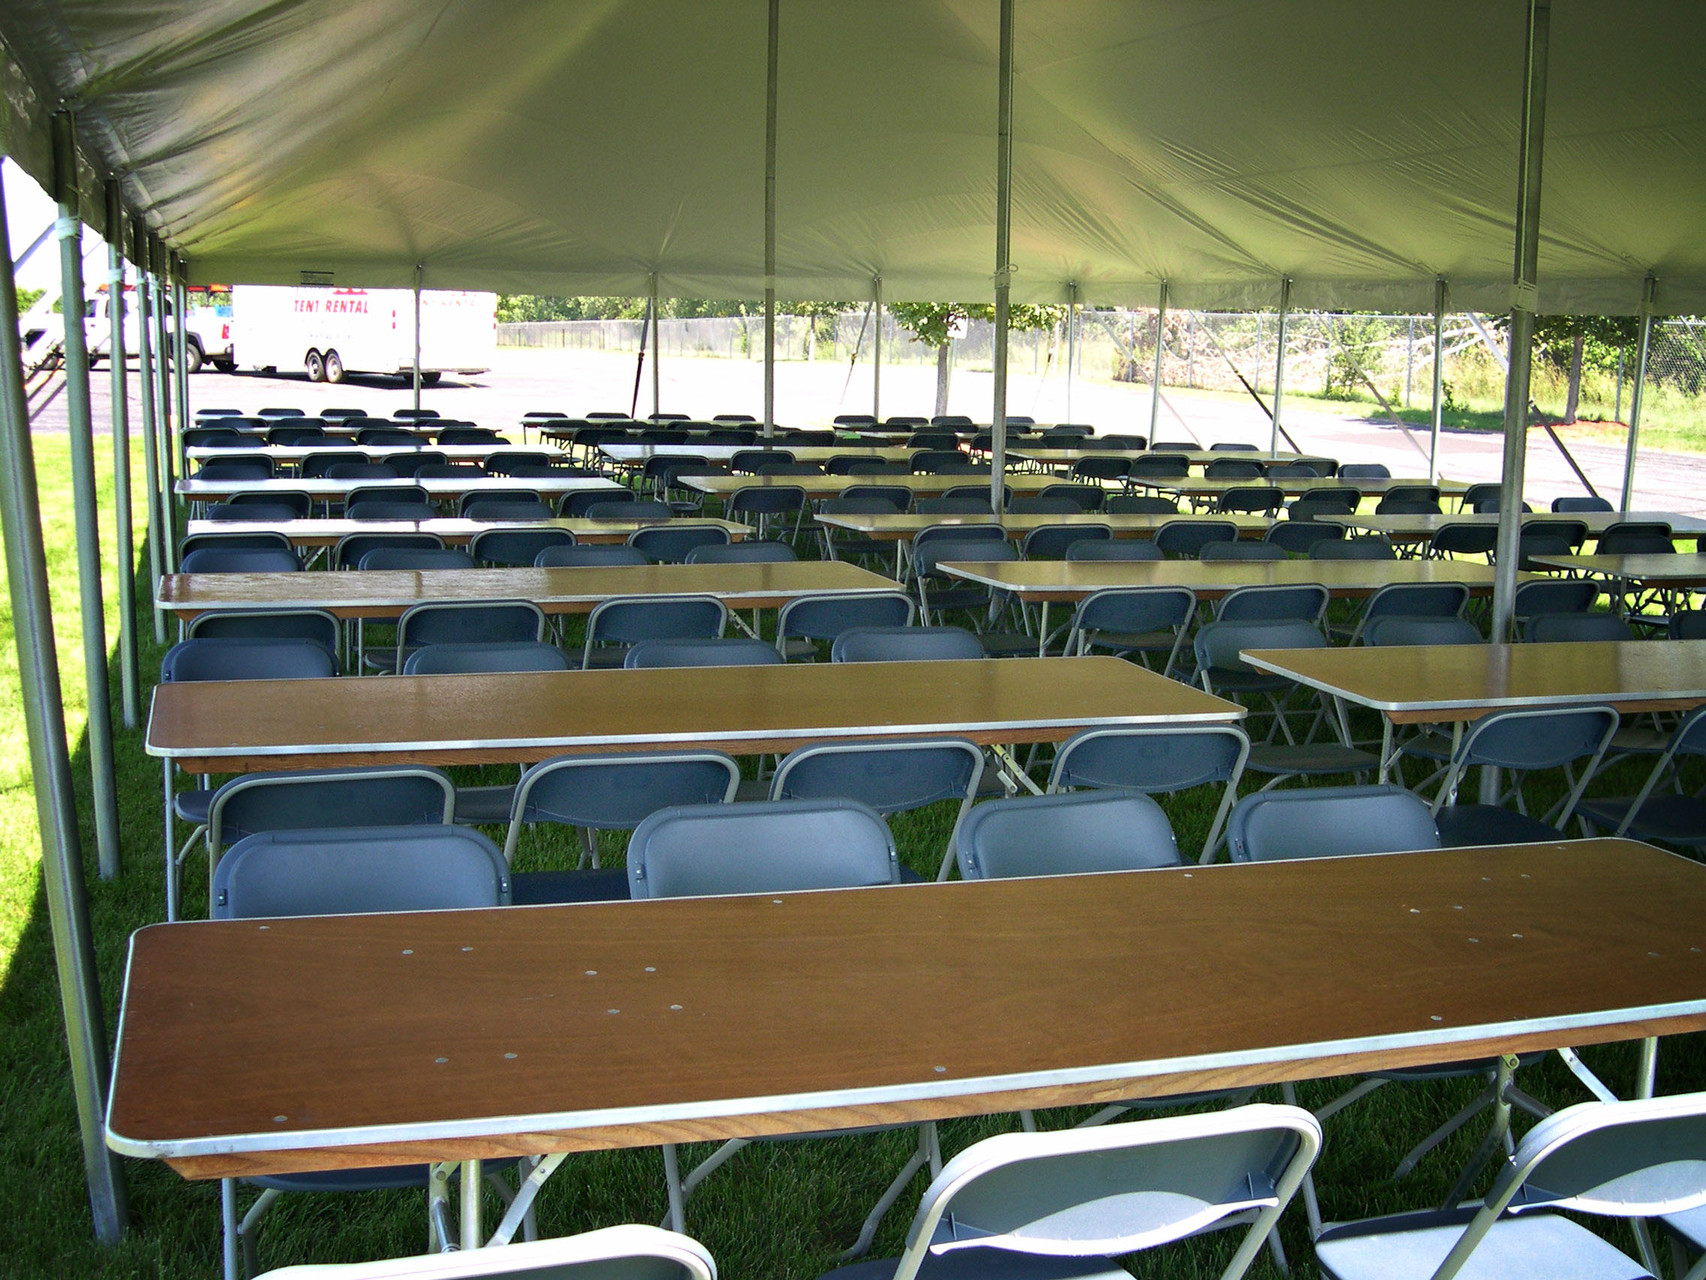 30 x 60 Pole tent with 24 tables and 192 chairs